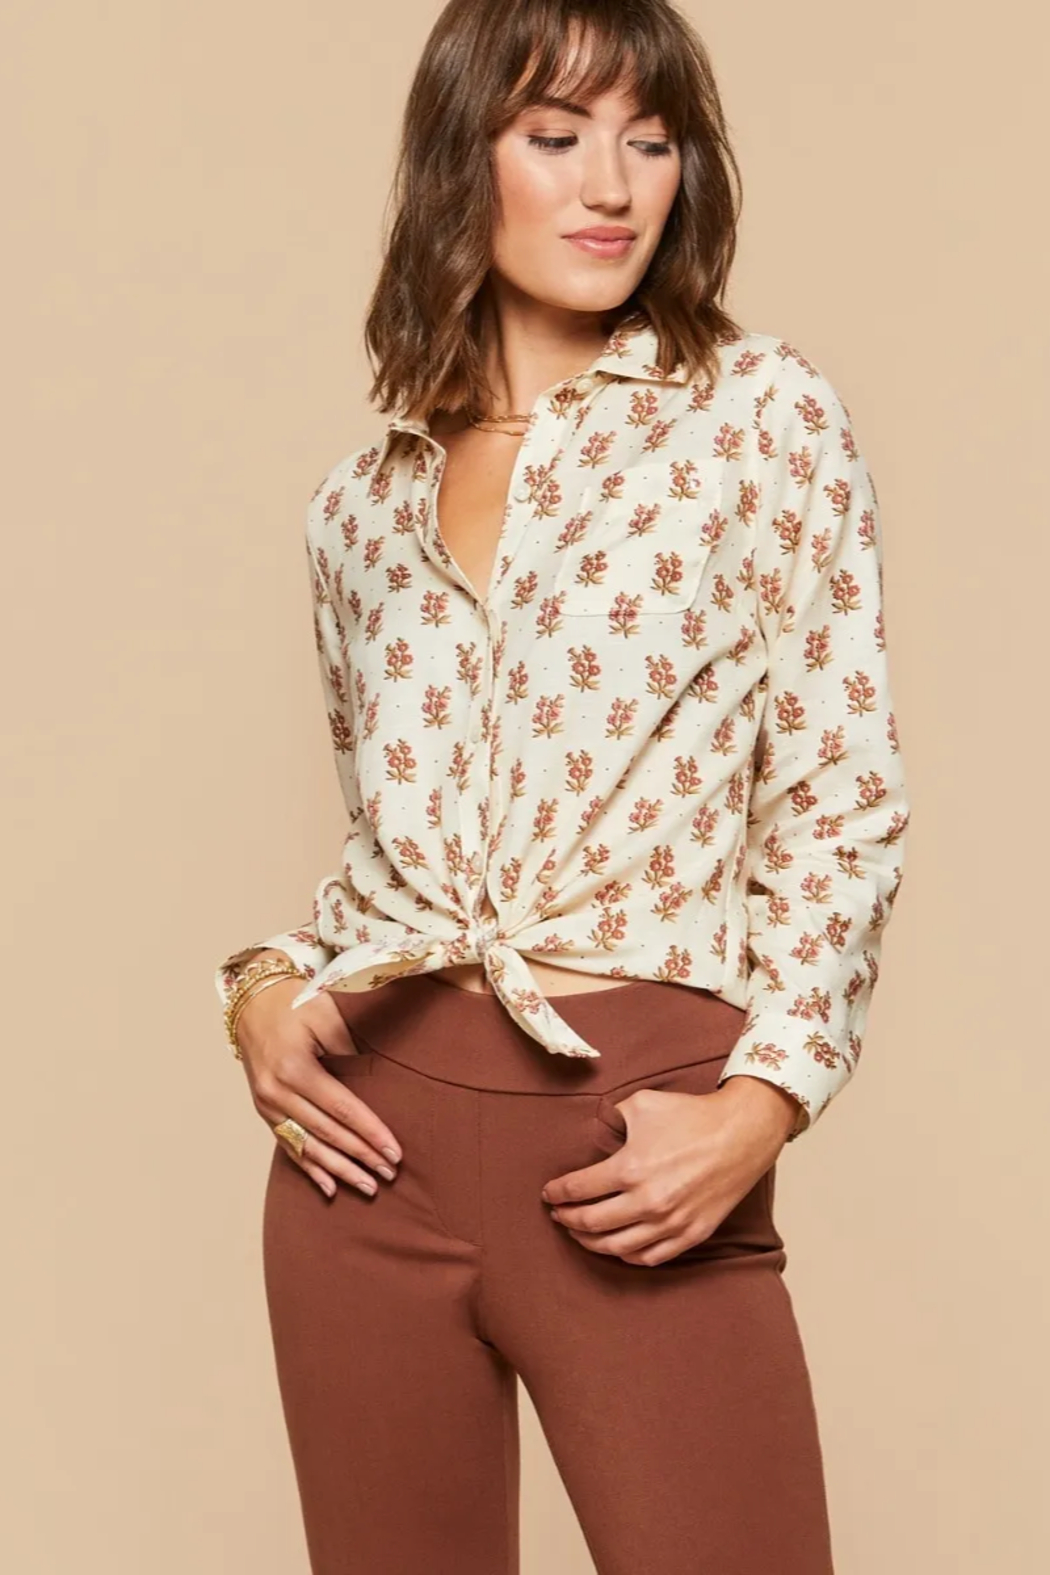 Spartina 449 Lois Shirt-Pink House Floral - Side Cropped Image